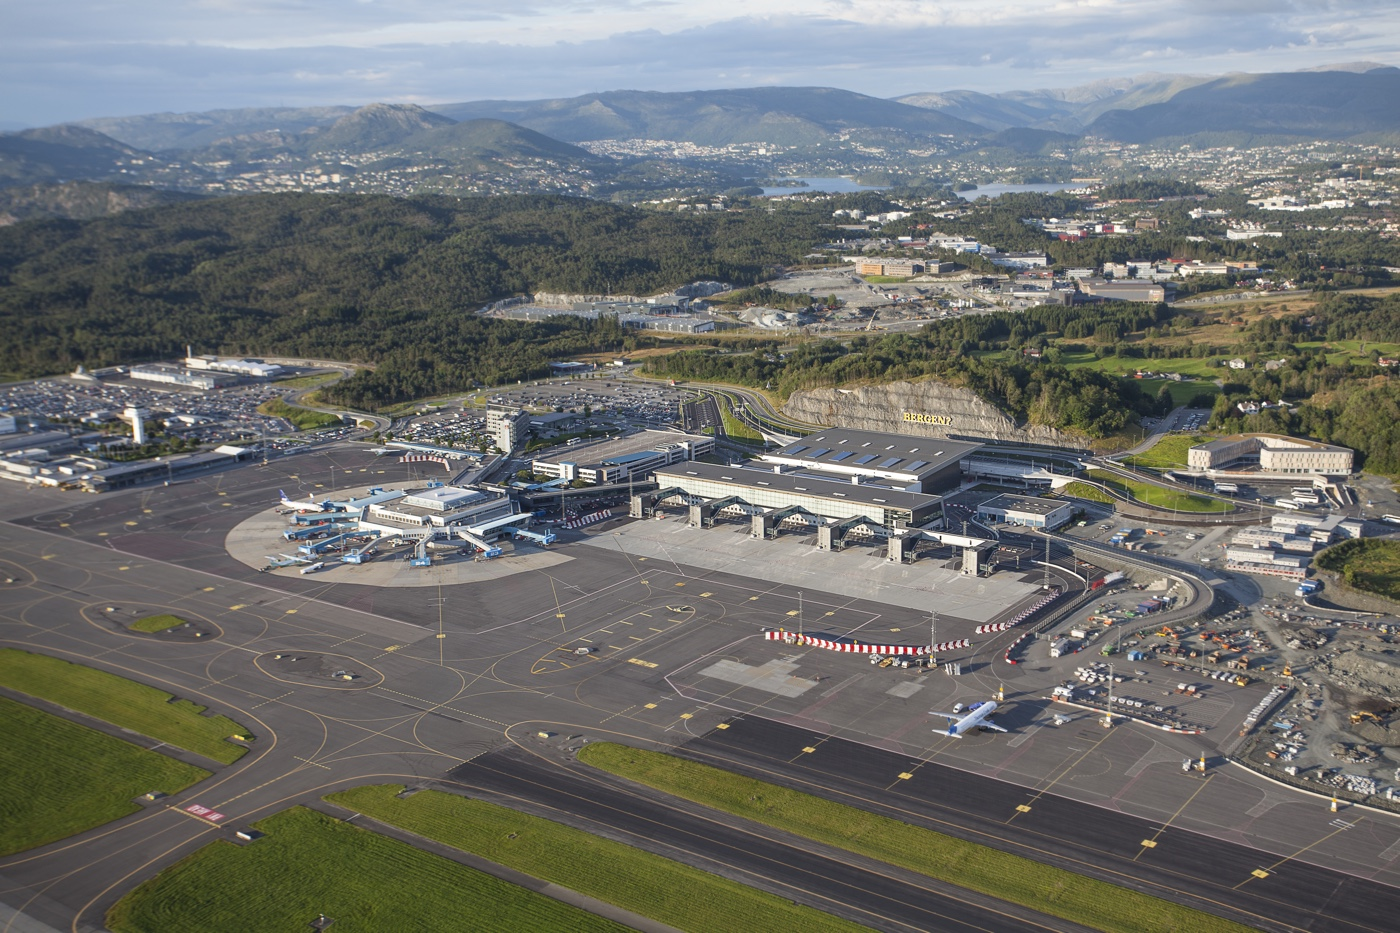 Flesland Airport in Bergen is bigger and better than ever before.